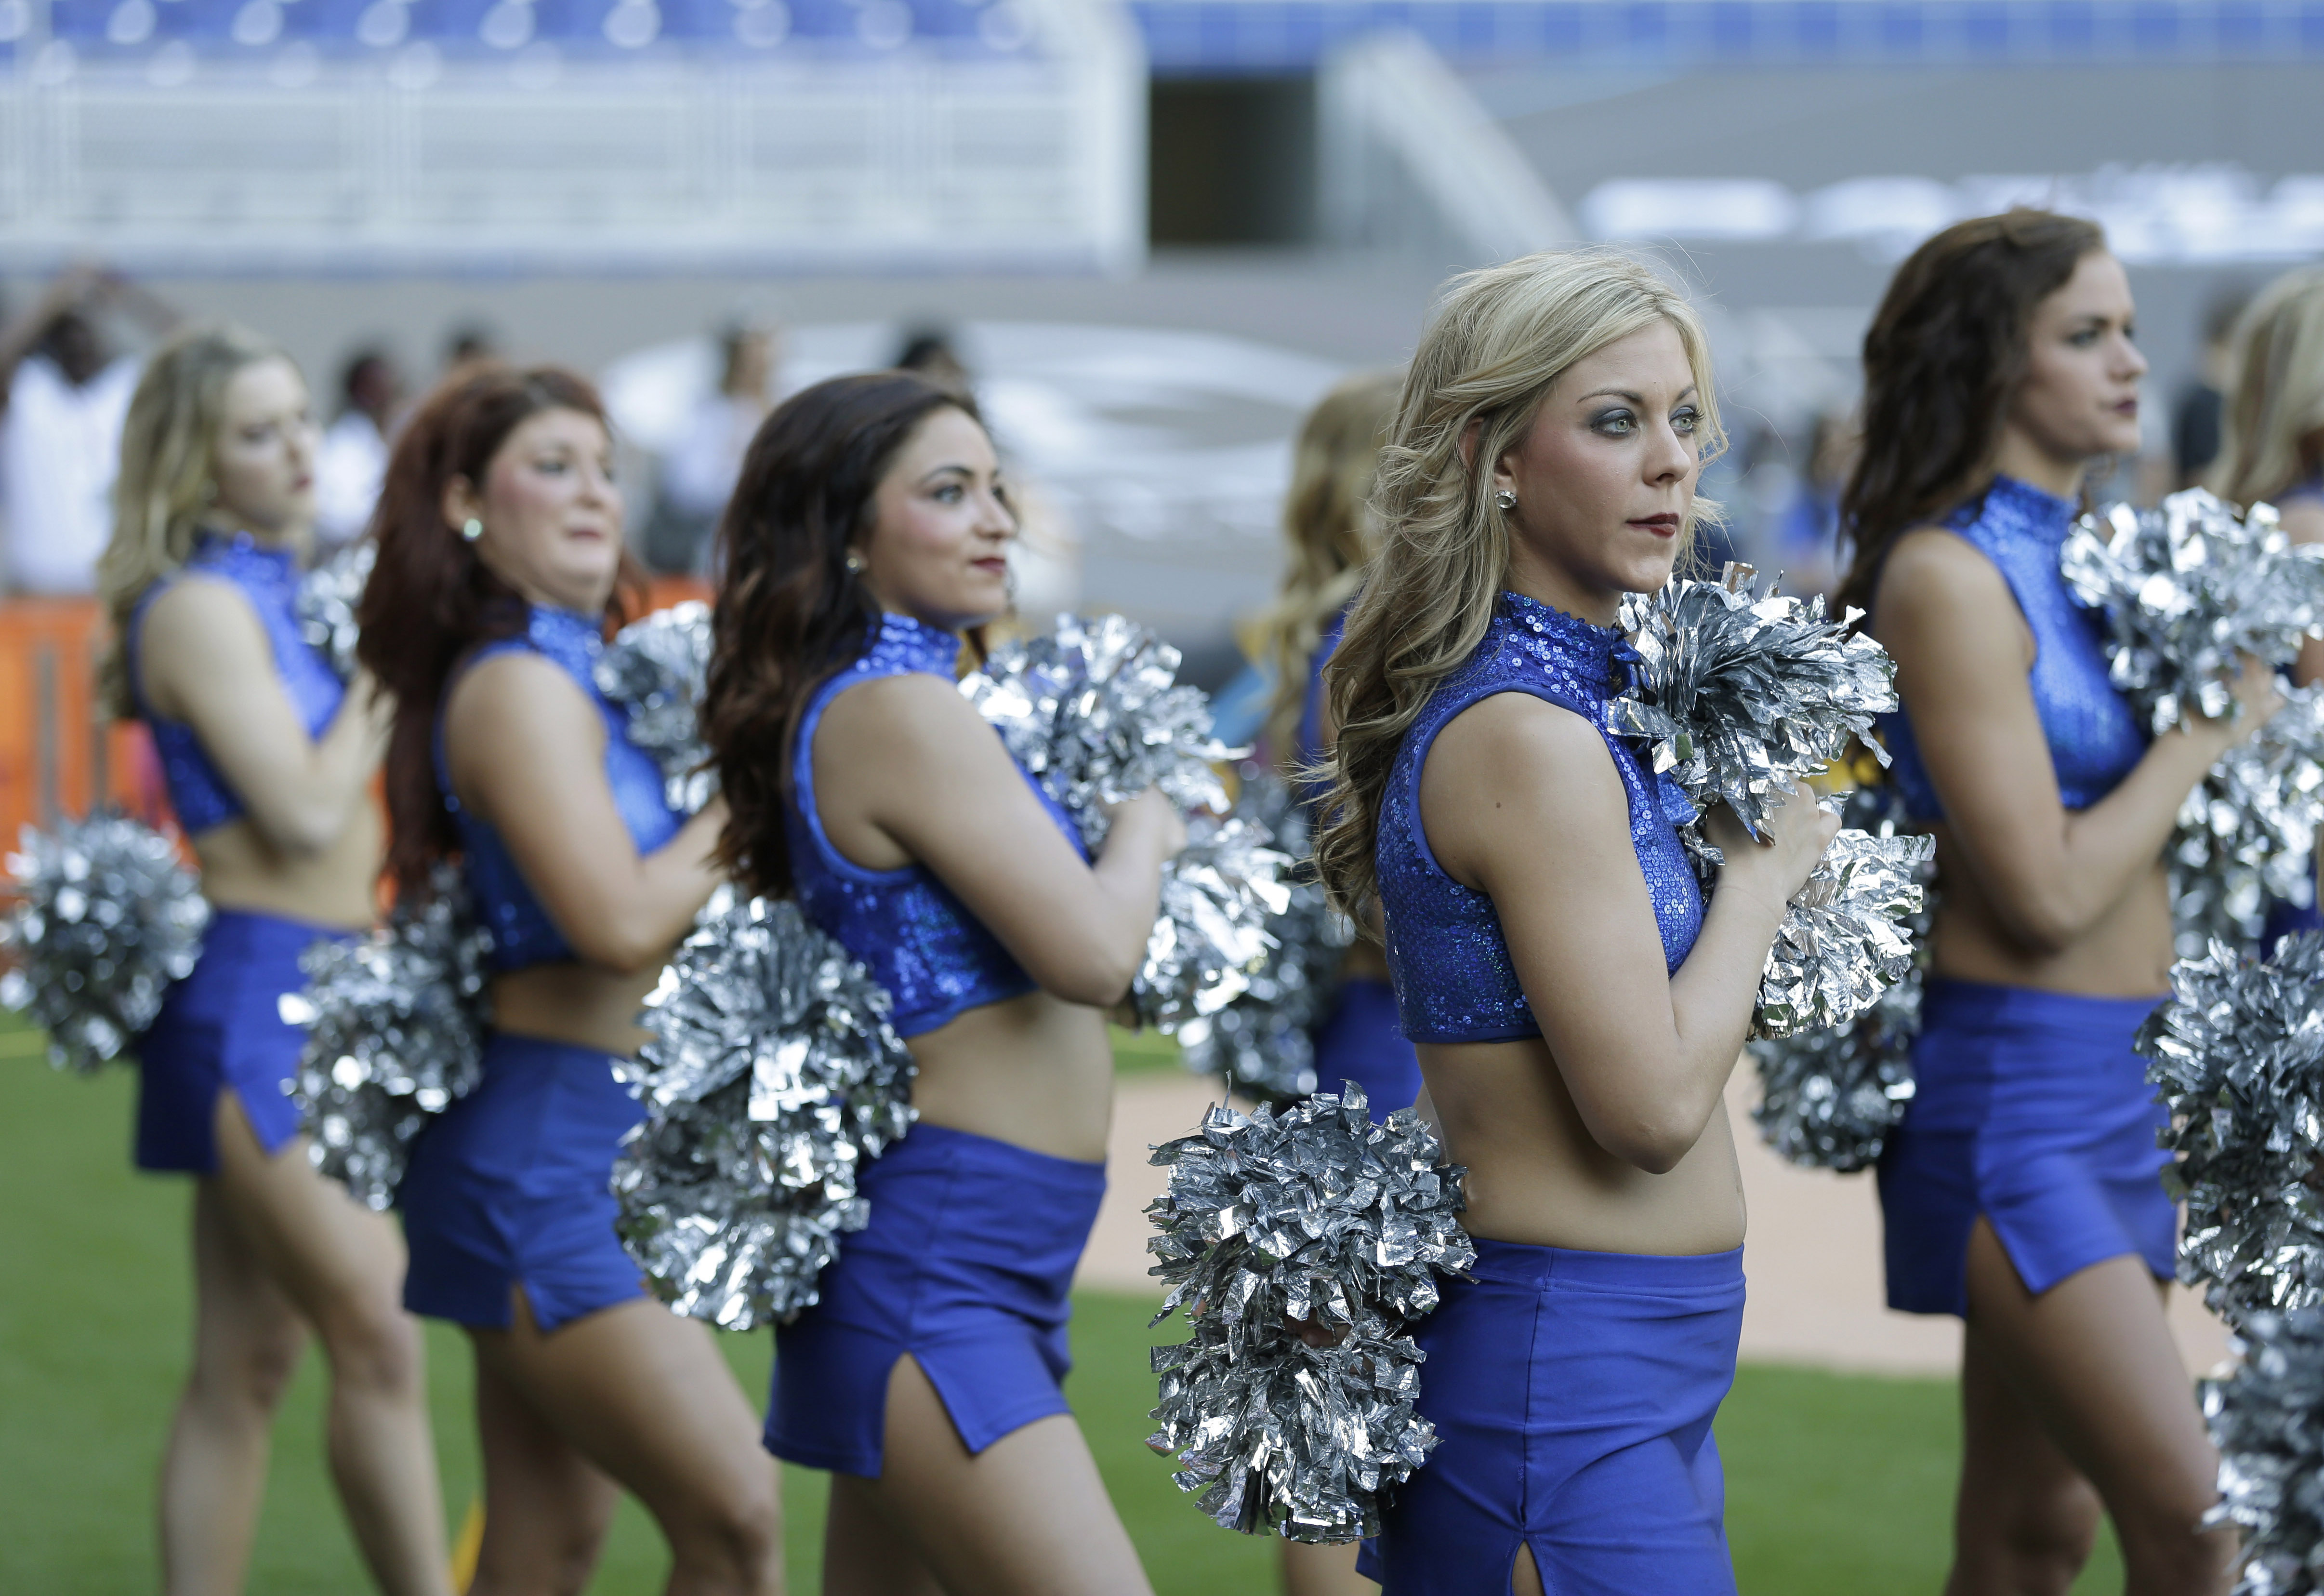 Memphis cheerleaders stand for the singing of the National Anthem before the start of the inaugural Miami Beach Bowl football game between Memphis and Brigham Young, Monday, Dec. 22, 2014 in Miami. (AP Photo/Wilfredo Lee)